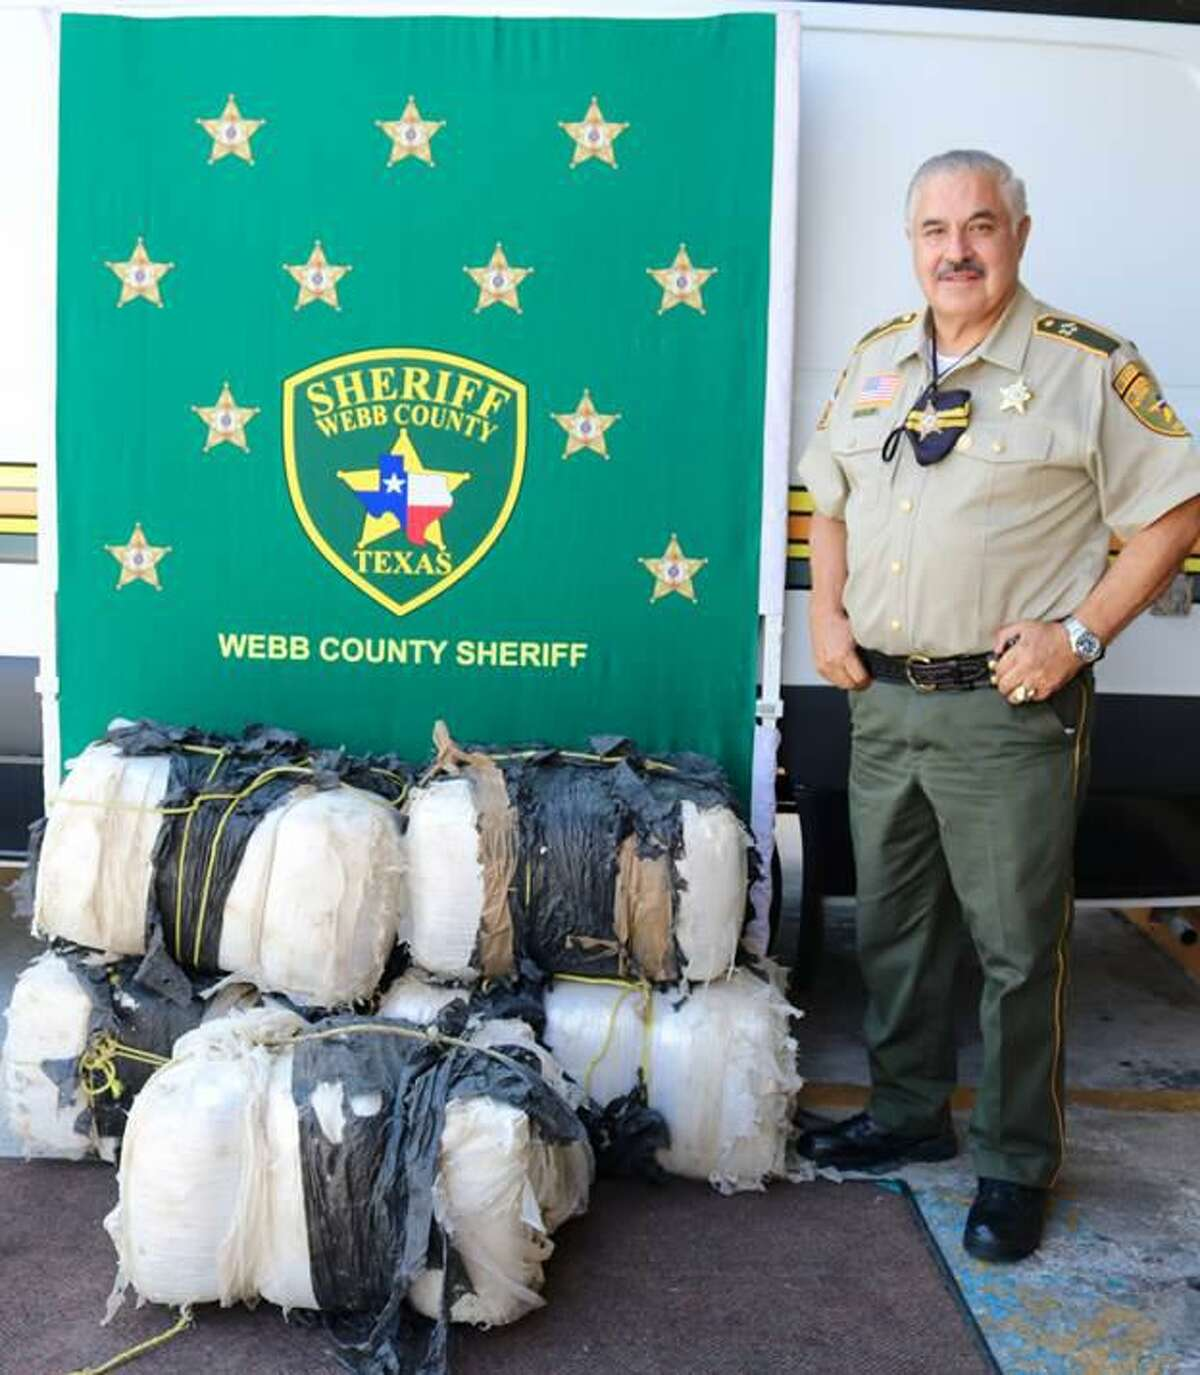 Sheriff Martin Cuellar said his deputies seized more than 360 pounds of marijuana following a pursuit. The contraband had an estimated street value of more than $100,000.